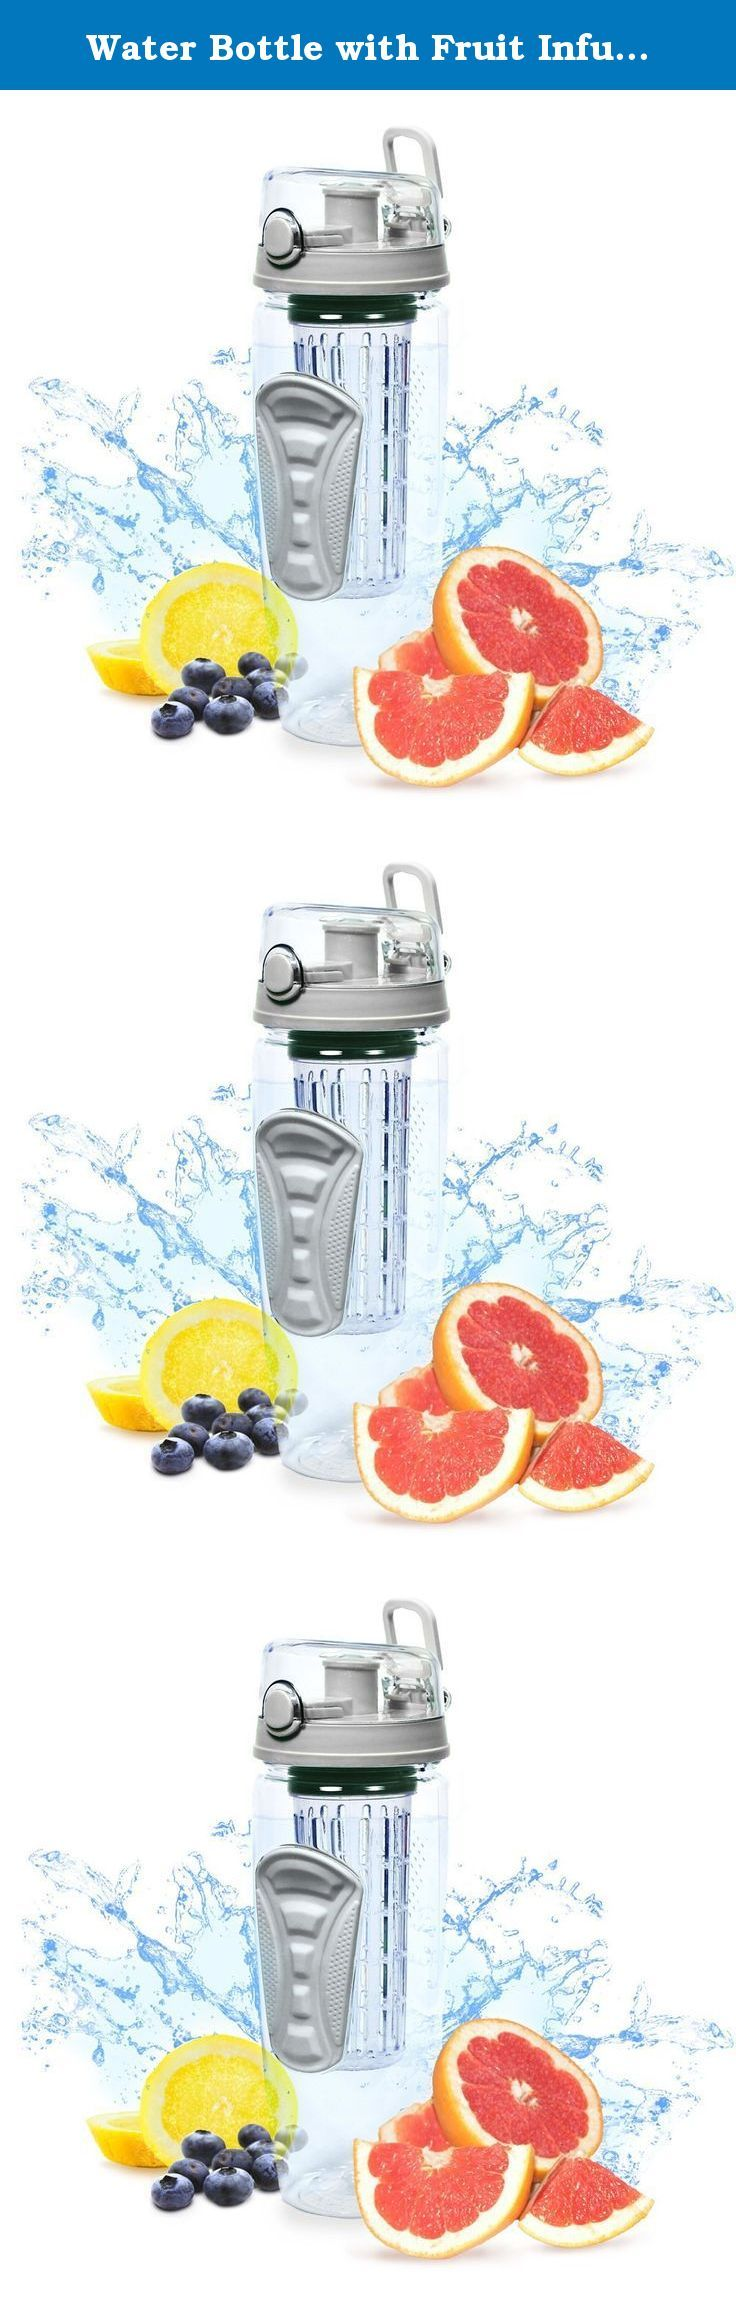 Water Bottle with Fruit Infuser (32oz) Fruit Infusion Blender Bottle drink mixer - w Flip Top Drinking Spout, Watertight, Enjoy Naturally Flavored Fruit Infused Water, Juice, Iced Tea and Lemonade - Made of Durable Tritan and BPA-free. 100% SATISFACTION GUARANTEED FEATURES: Made To Last Impact Resistant Eco-Friendly BPA Free Tritan Eastman Plastic Easy To Clean Our Fruit Infuser Tumbler is Dishwasher Safe and Hand Washable 32 oz - The Perfect Size Fruit Infuser To Help You Drink Your…